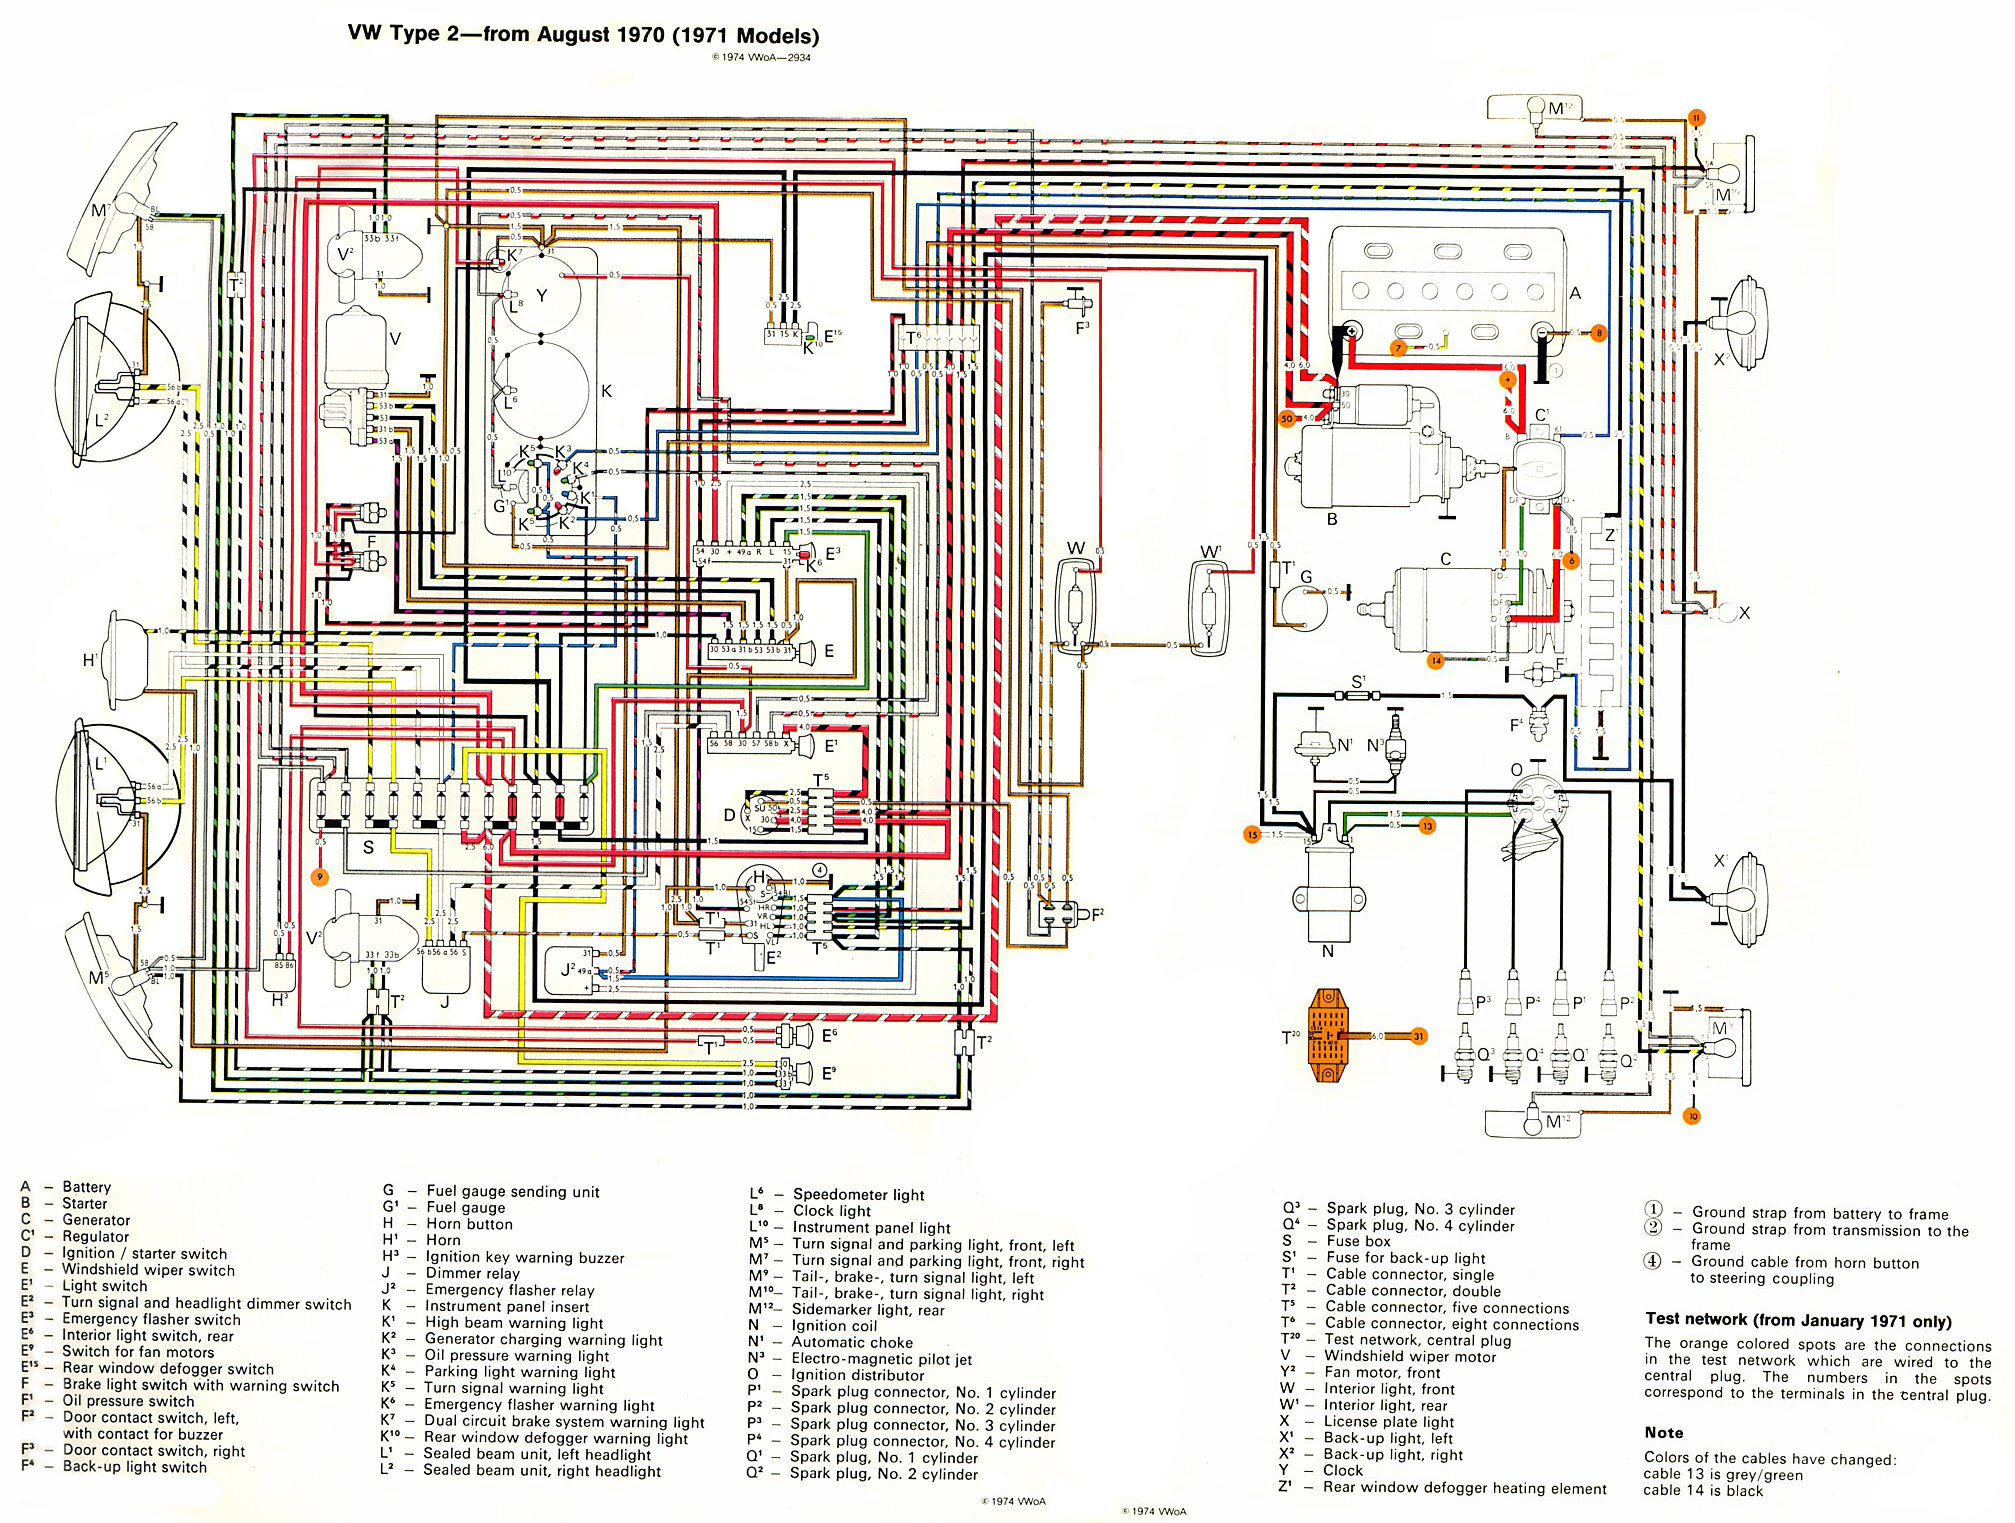 thesamba com type 2 wiring diagrams rh thesamba com VW Type 13 VW Type 3  Squareback